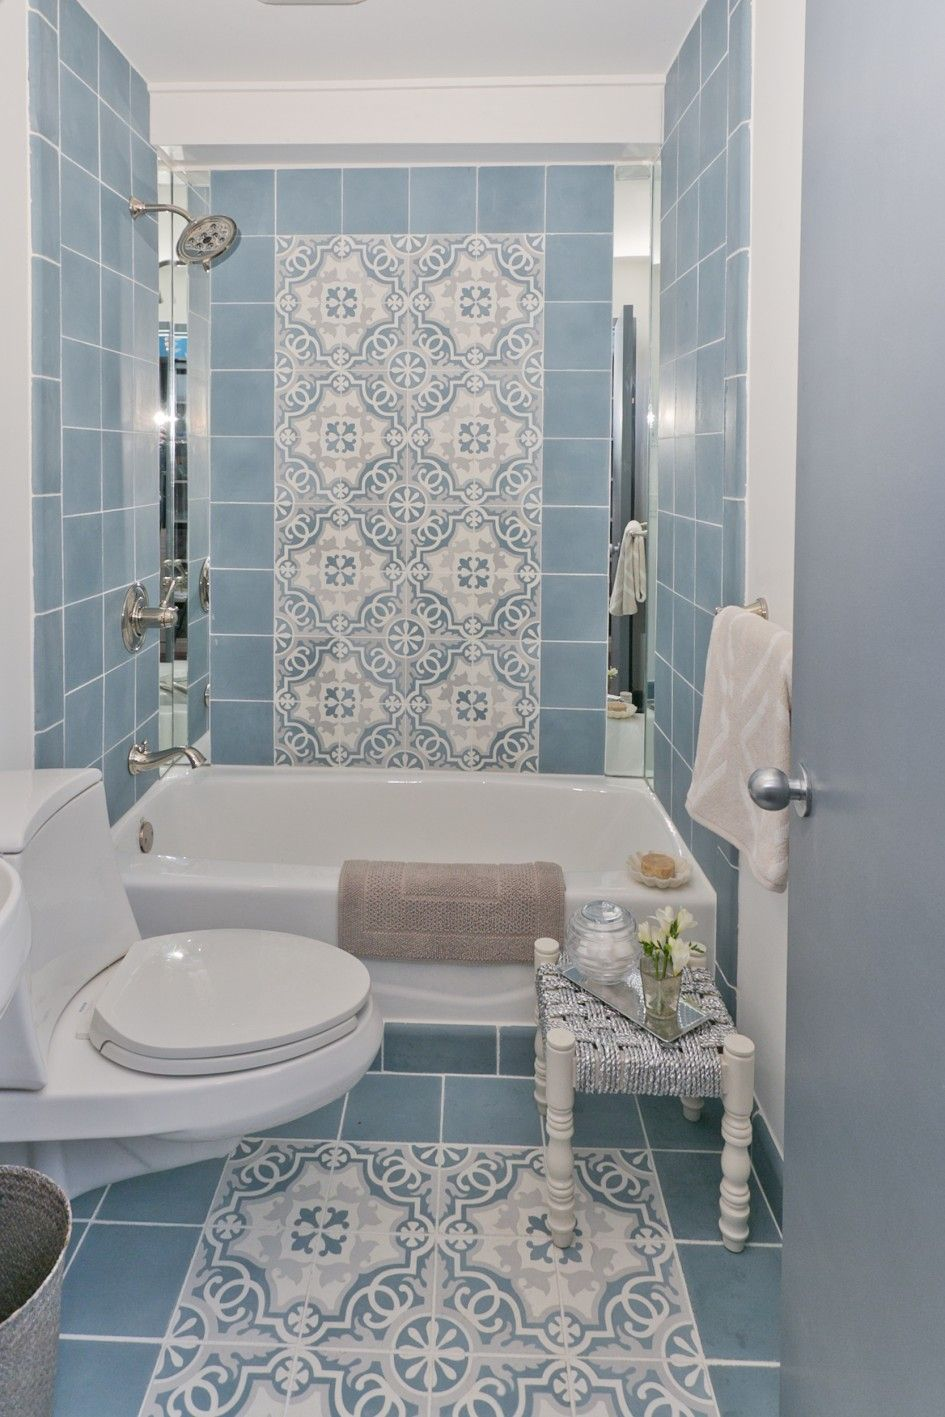 Bathroom designs for small spaces blue - Beautiful Minimalist Blue Tile Pattern Bathroom Decor